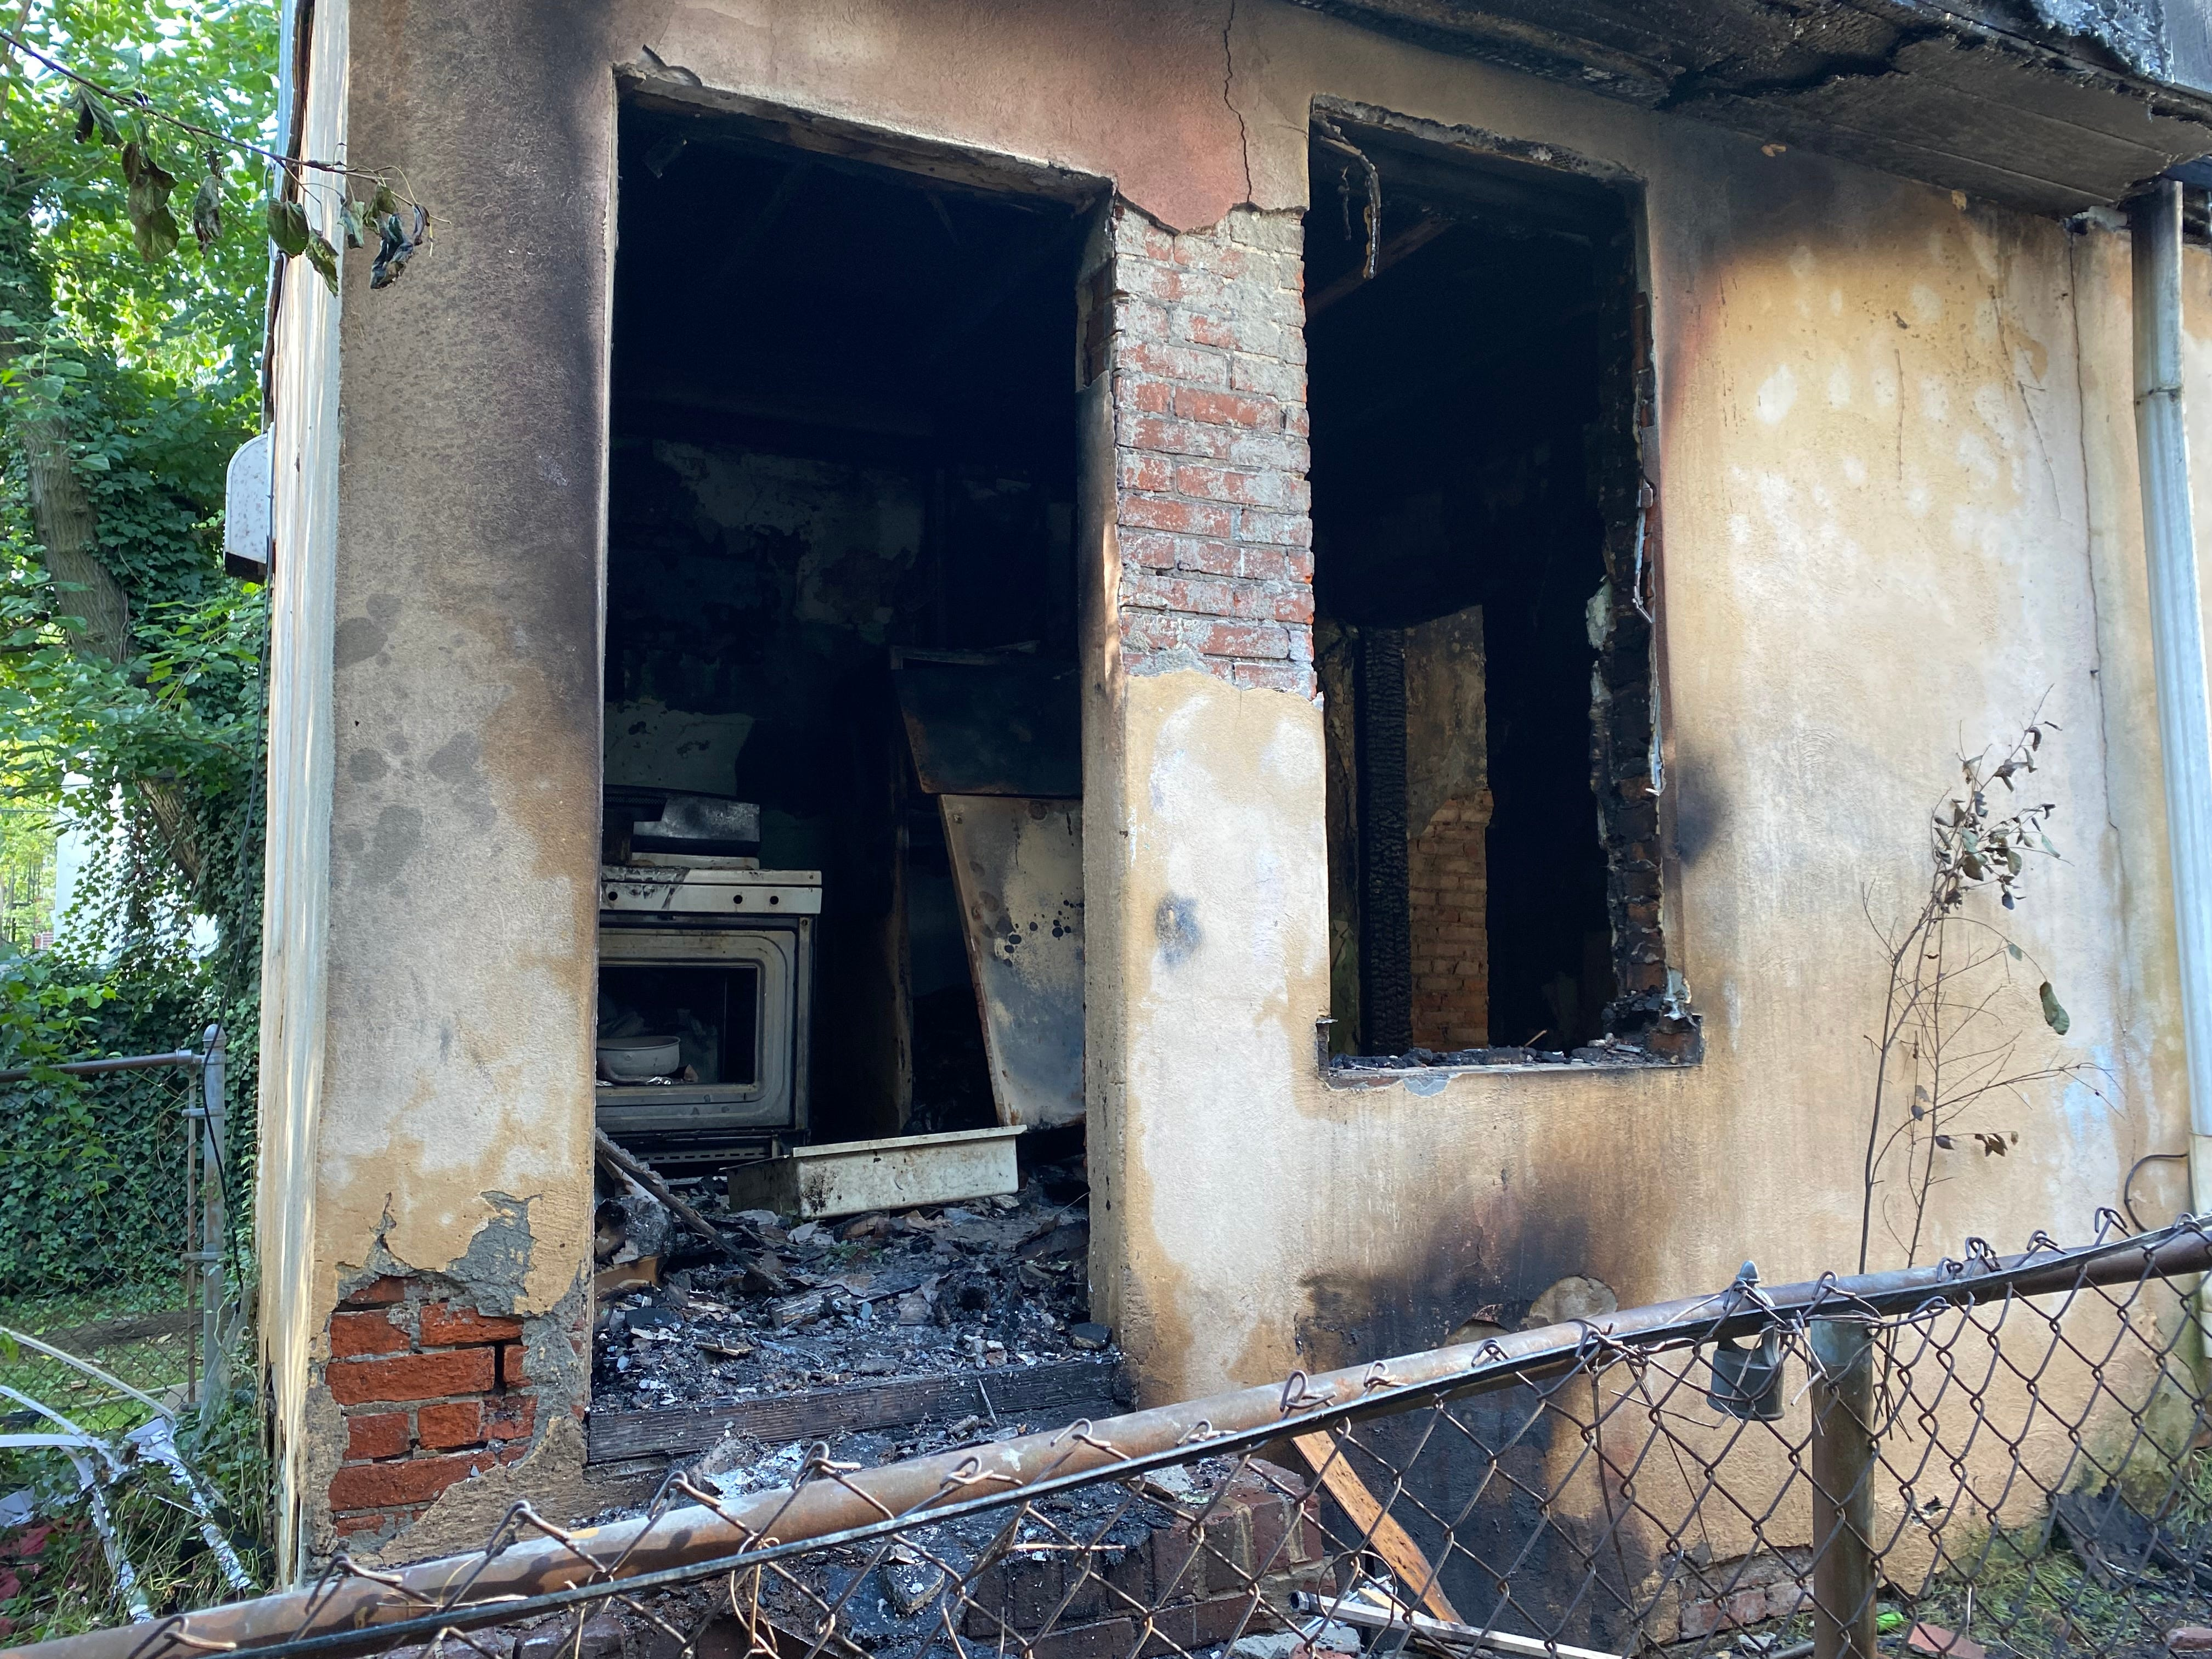 2 killed in Wilmington house fire Tuesday morning